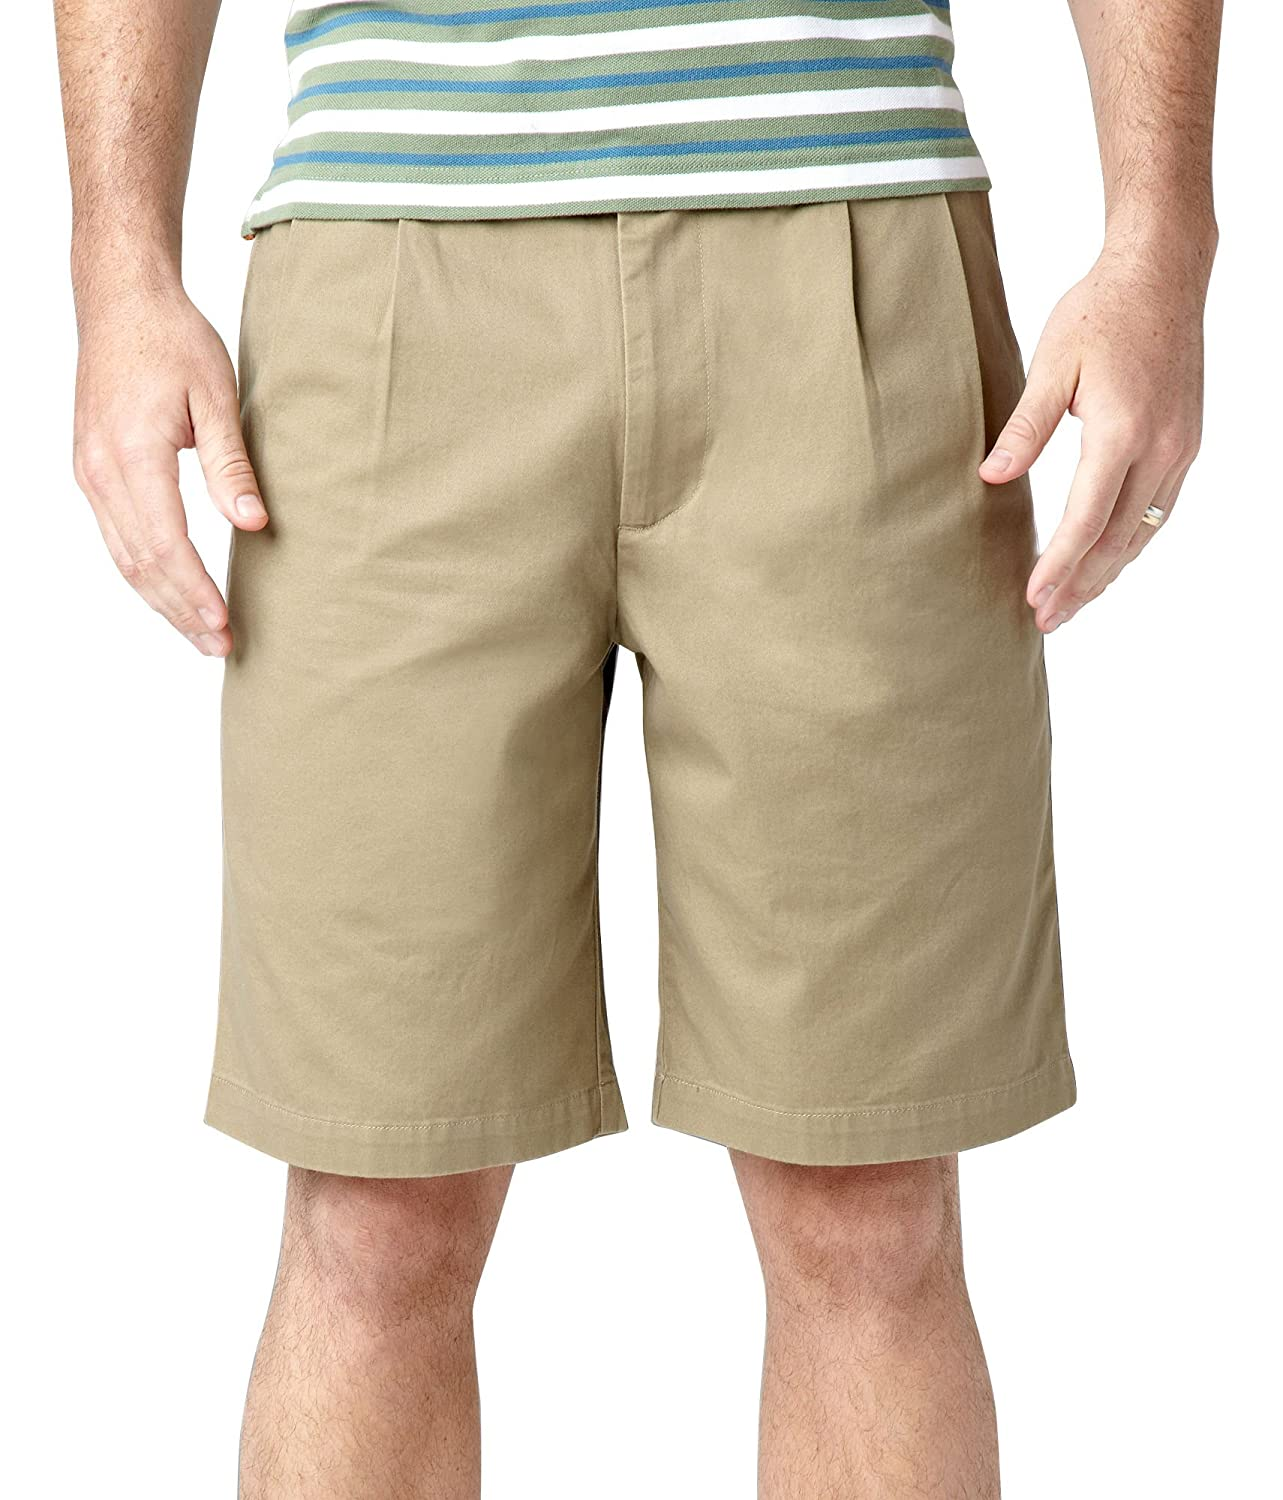 Dockers Men's Perfect Short D3 Classic-Fit Pleated Short - 34W - British Khaki 0041500931